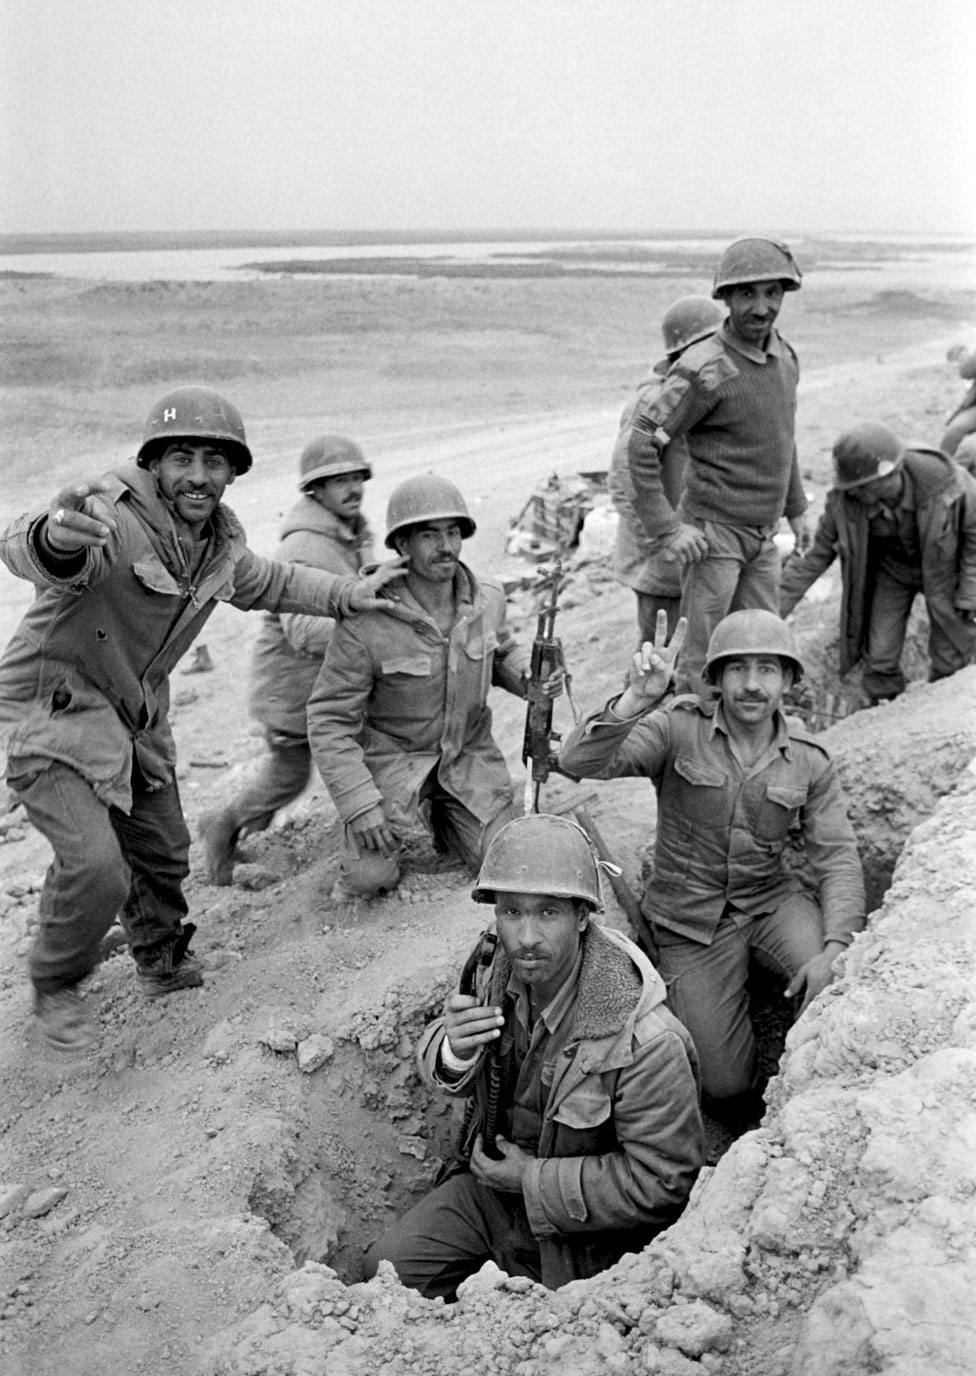 An Iraqi soldier flashes a V-sign as his comrades look on, in a trench dug near Al Boweizah swamps, north of Basra on March 18, 1985